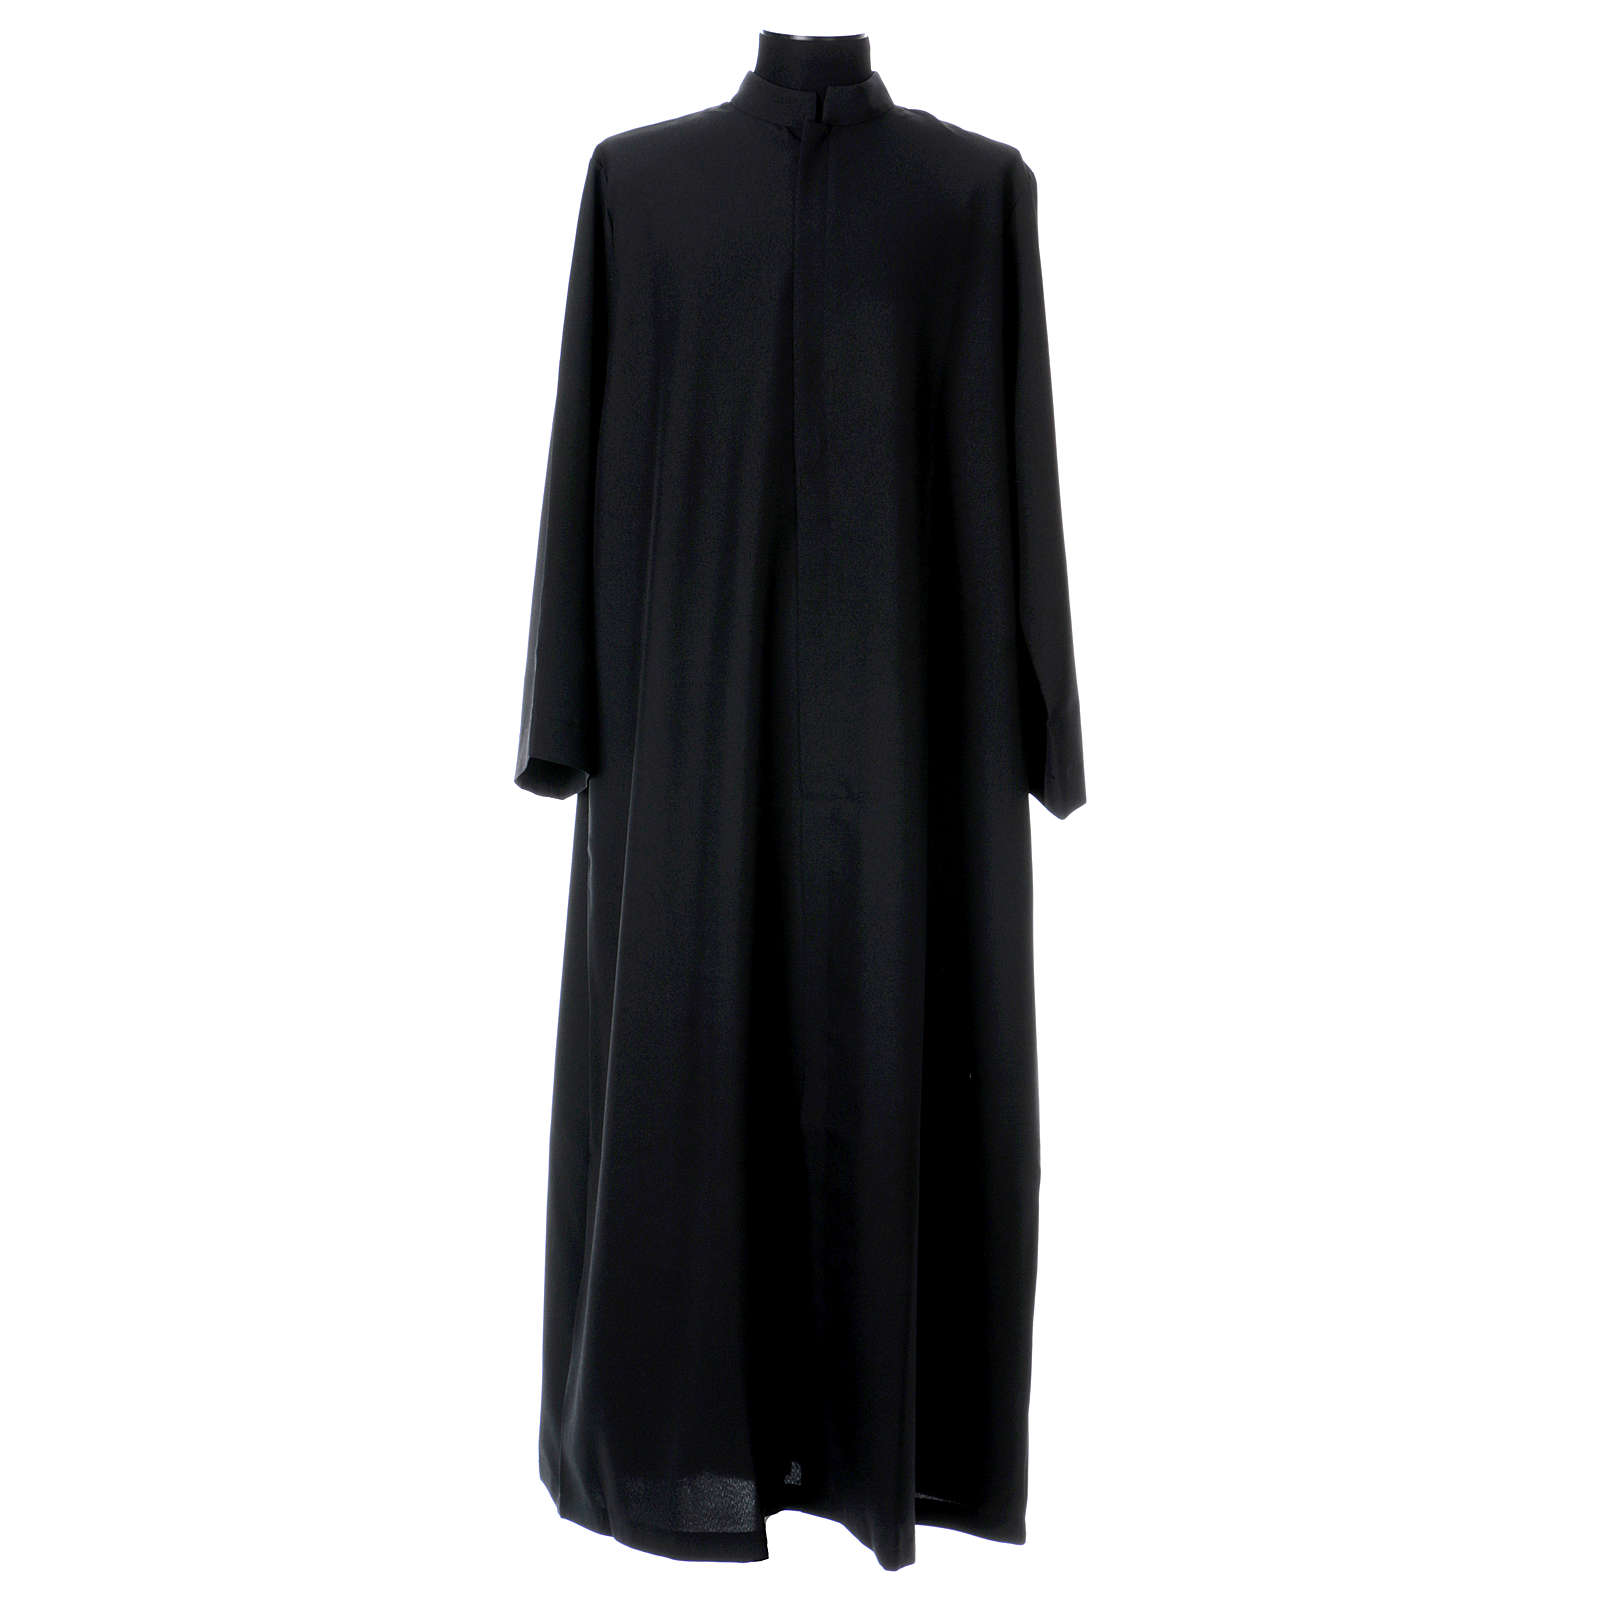 Black cassock with concealed zipper 4